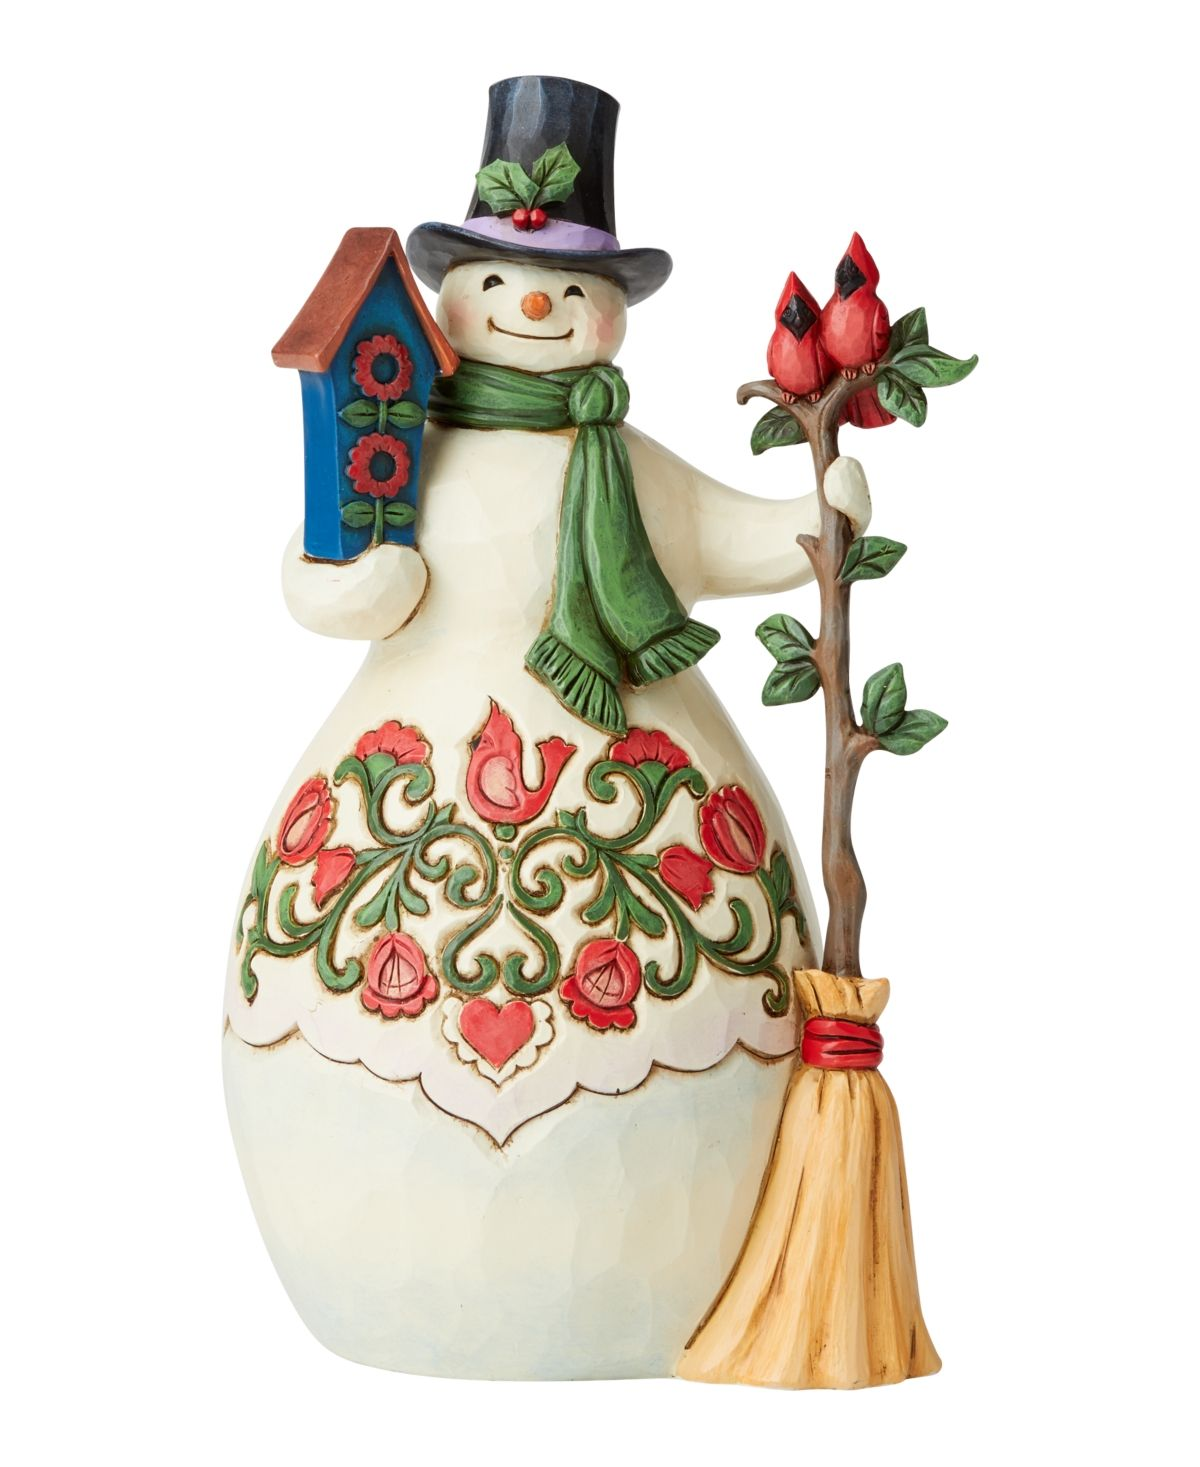 Jim Shore Snowman With Cardinal And Birdhouse Multi In 2021 Jim Shore Christmas Jim Shore Holiday Snowmen